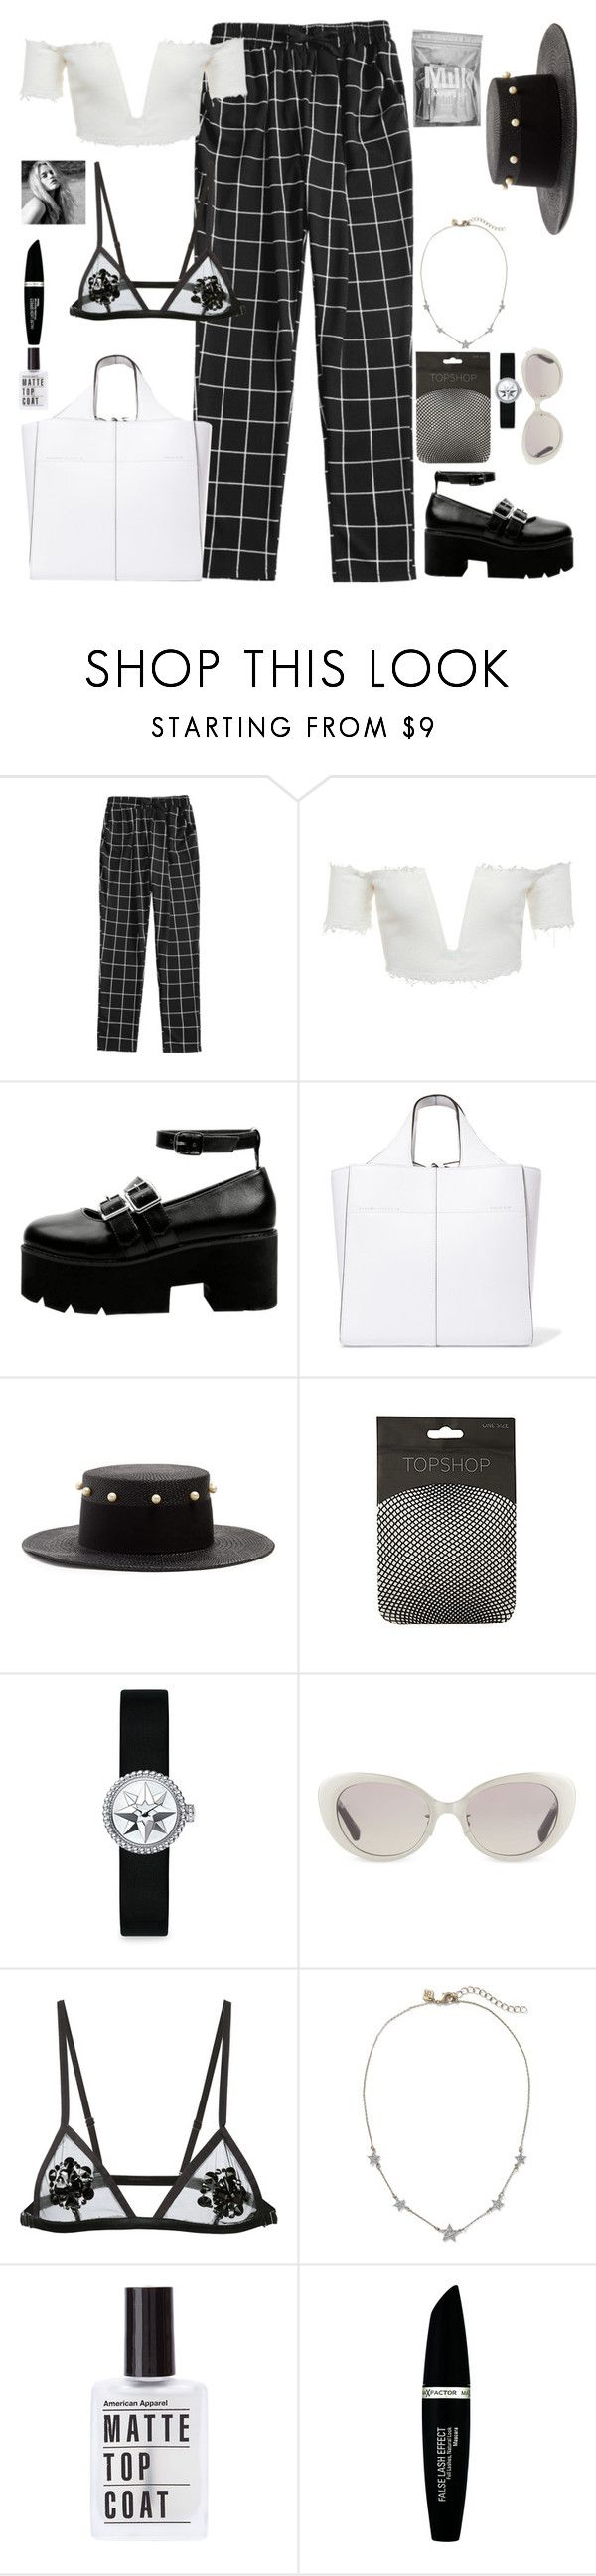 """""""Visit Riviera"""" by gb041112 ❤ liked on Polyvore featuring Victoria Beckham, Federica Moretti, Christian Dior, Linda Farrow, Fleur du Mal, Max Factor and MILK MAKEUP"""